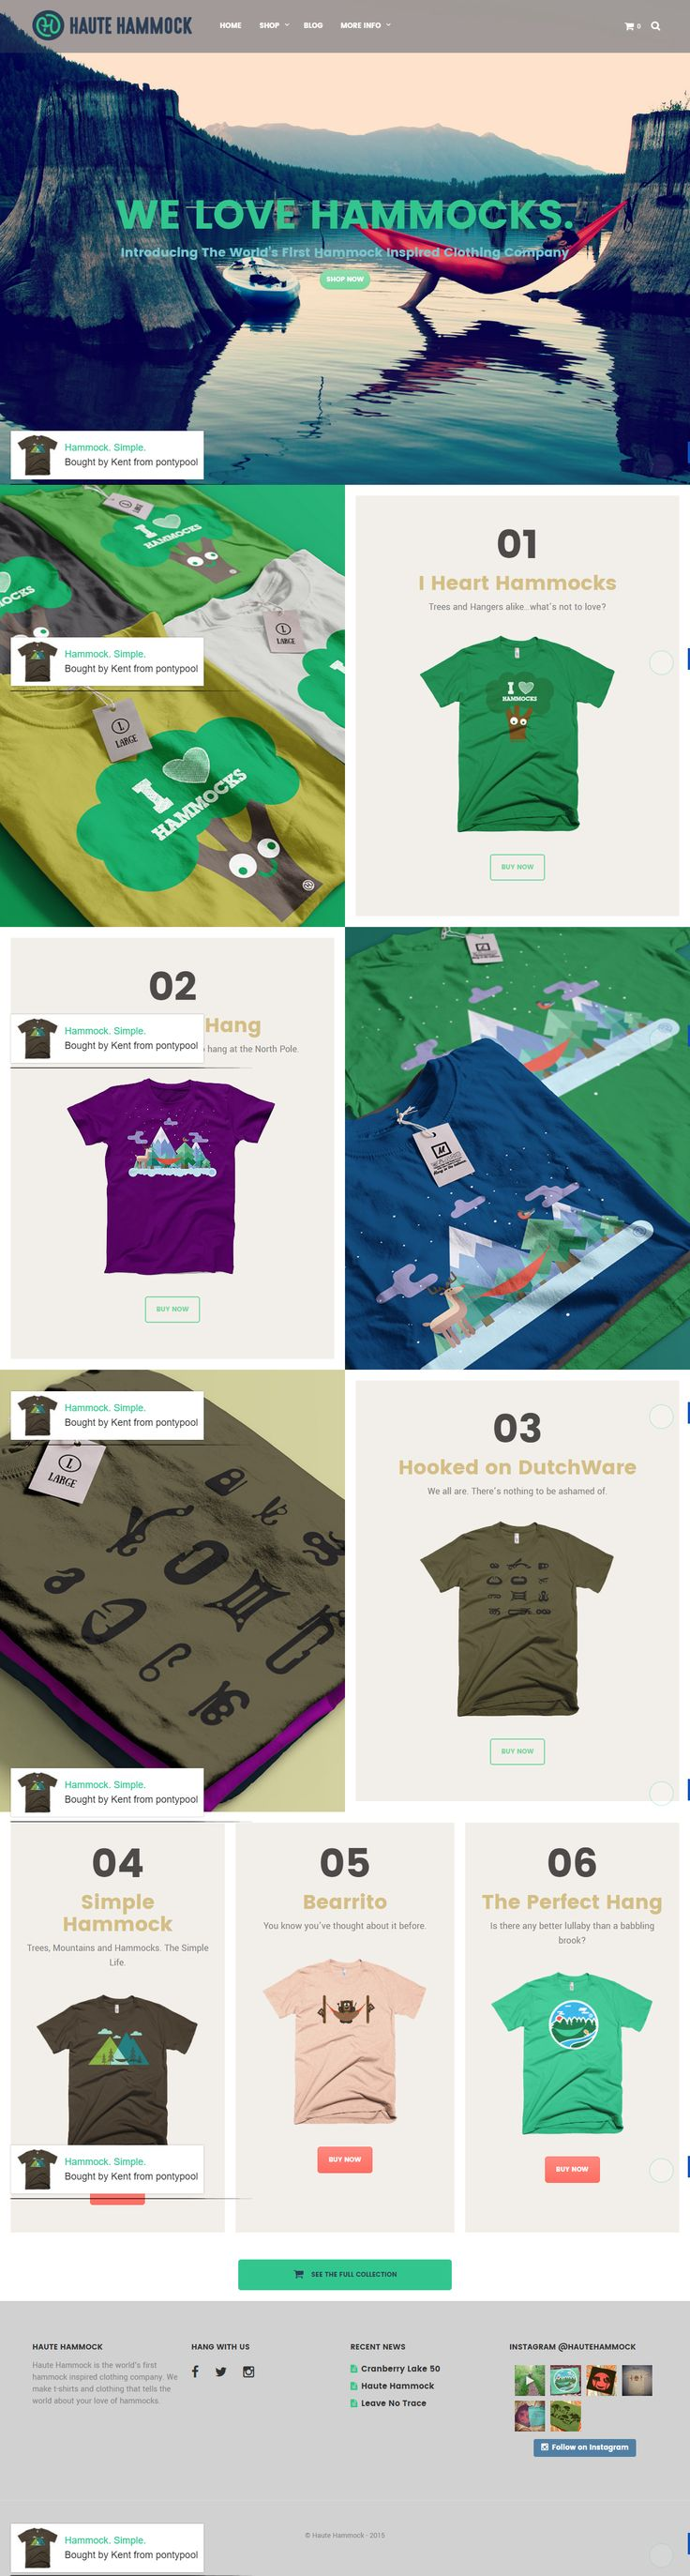 hautehammock.com was built using Shopkeeper WordPress theme #wordpress #design #template #tshirts #hammocks http://themeforest.net/item/shopkeeper-responsive-wordpress-theme/9553045?&utm_source=pinterest.com&utm_medium=social&utm_content=haute-hammock&utm_campaign=showcase